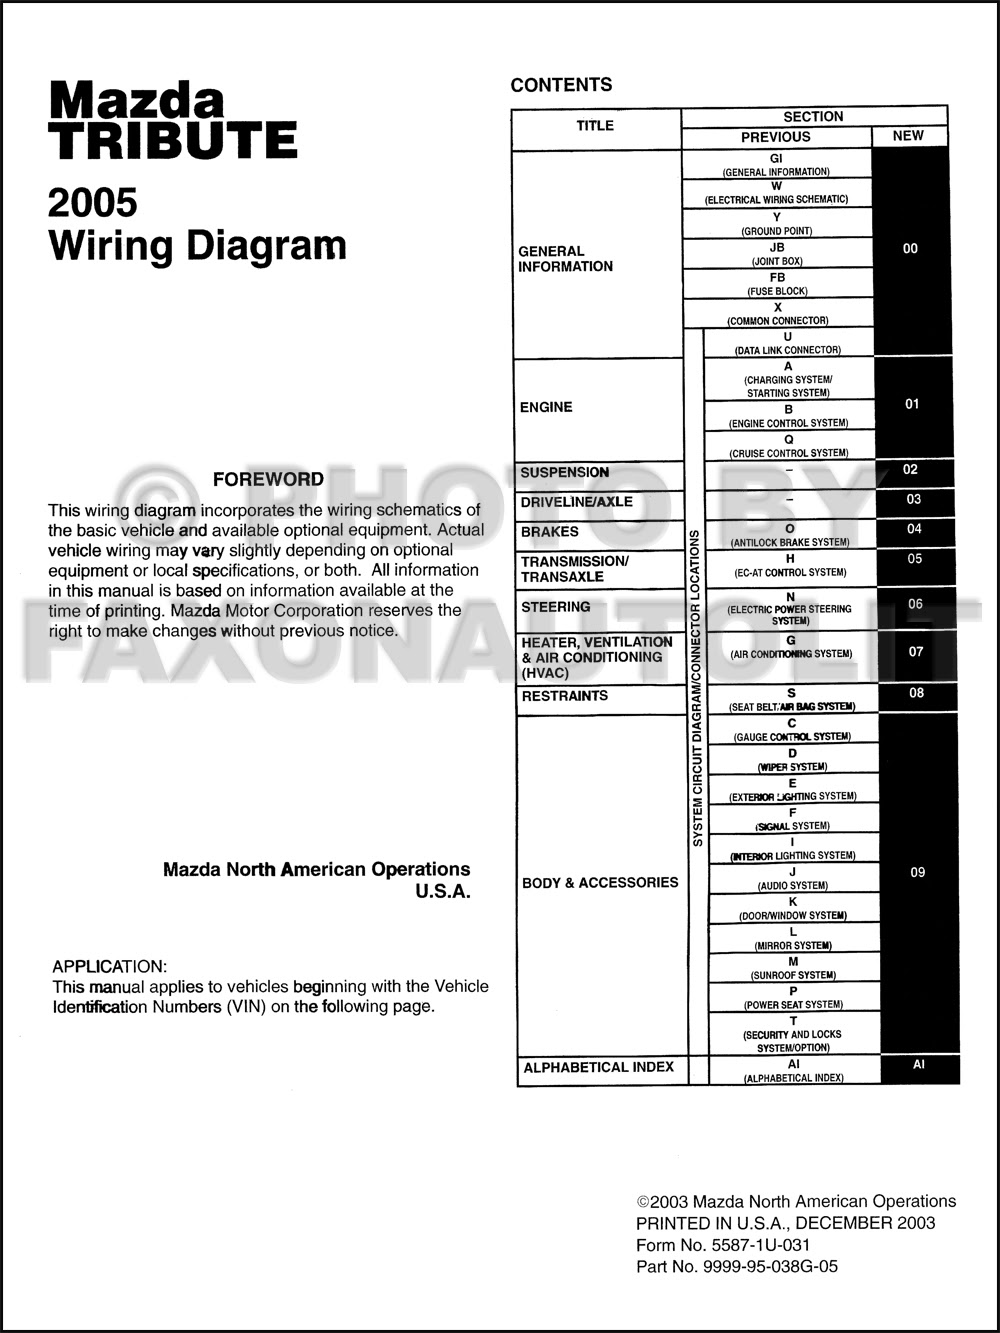 Diagram 2009 Mazda Tribute Wiring Diagram Full Version Hd Quality Wiring Diagram Tang Cabinet Accordance Fr